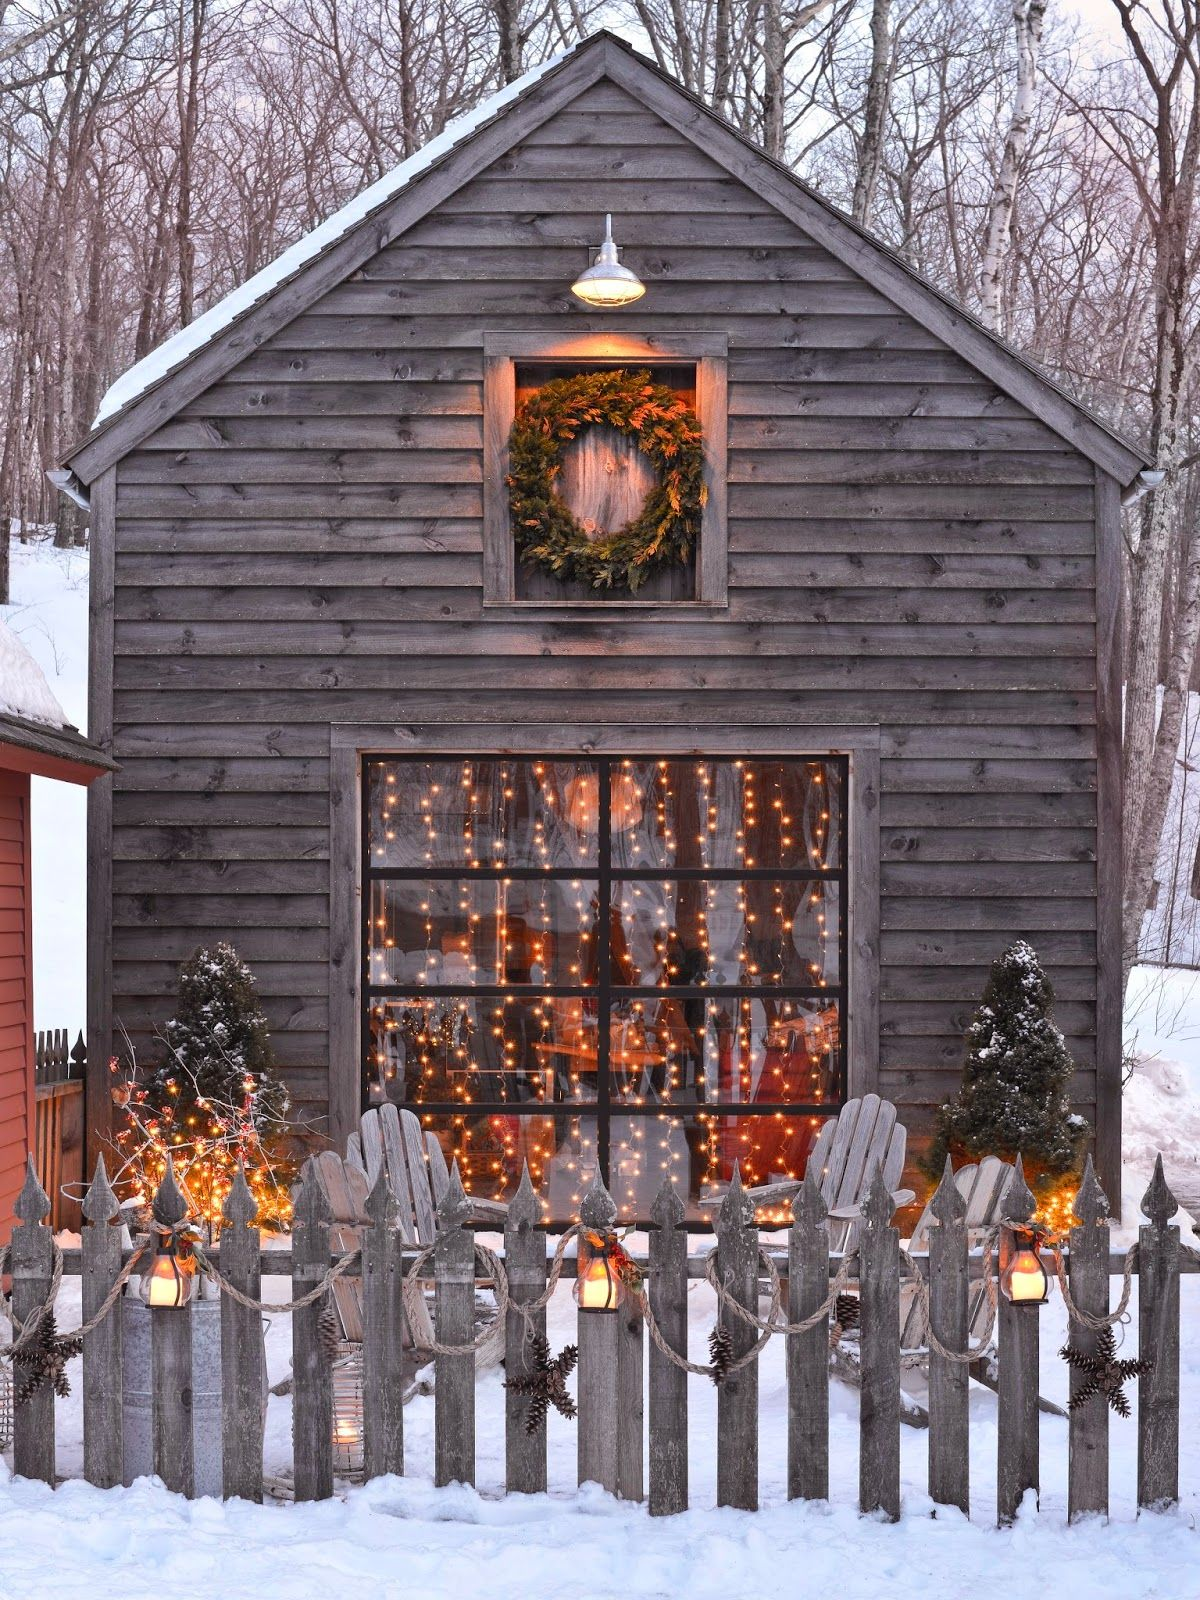 Rustic cabin christmas decorations - Natural Rustic Outdoor Christmas Decorating I Love The Rope Garland With Pinecone Stars Hanging